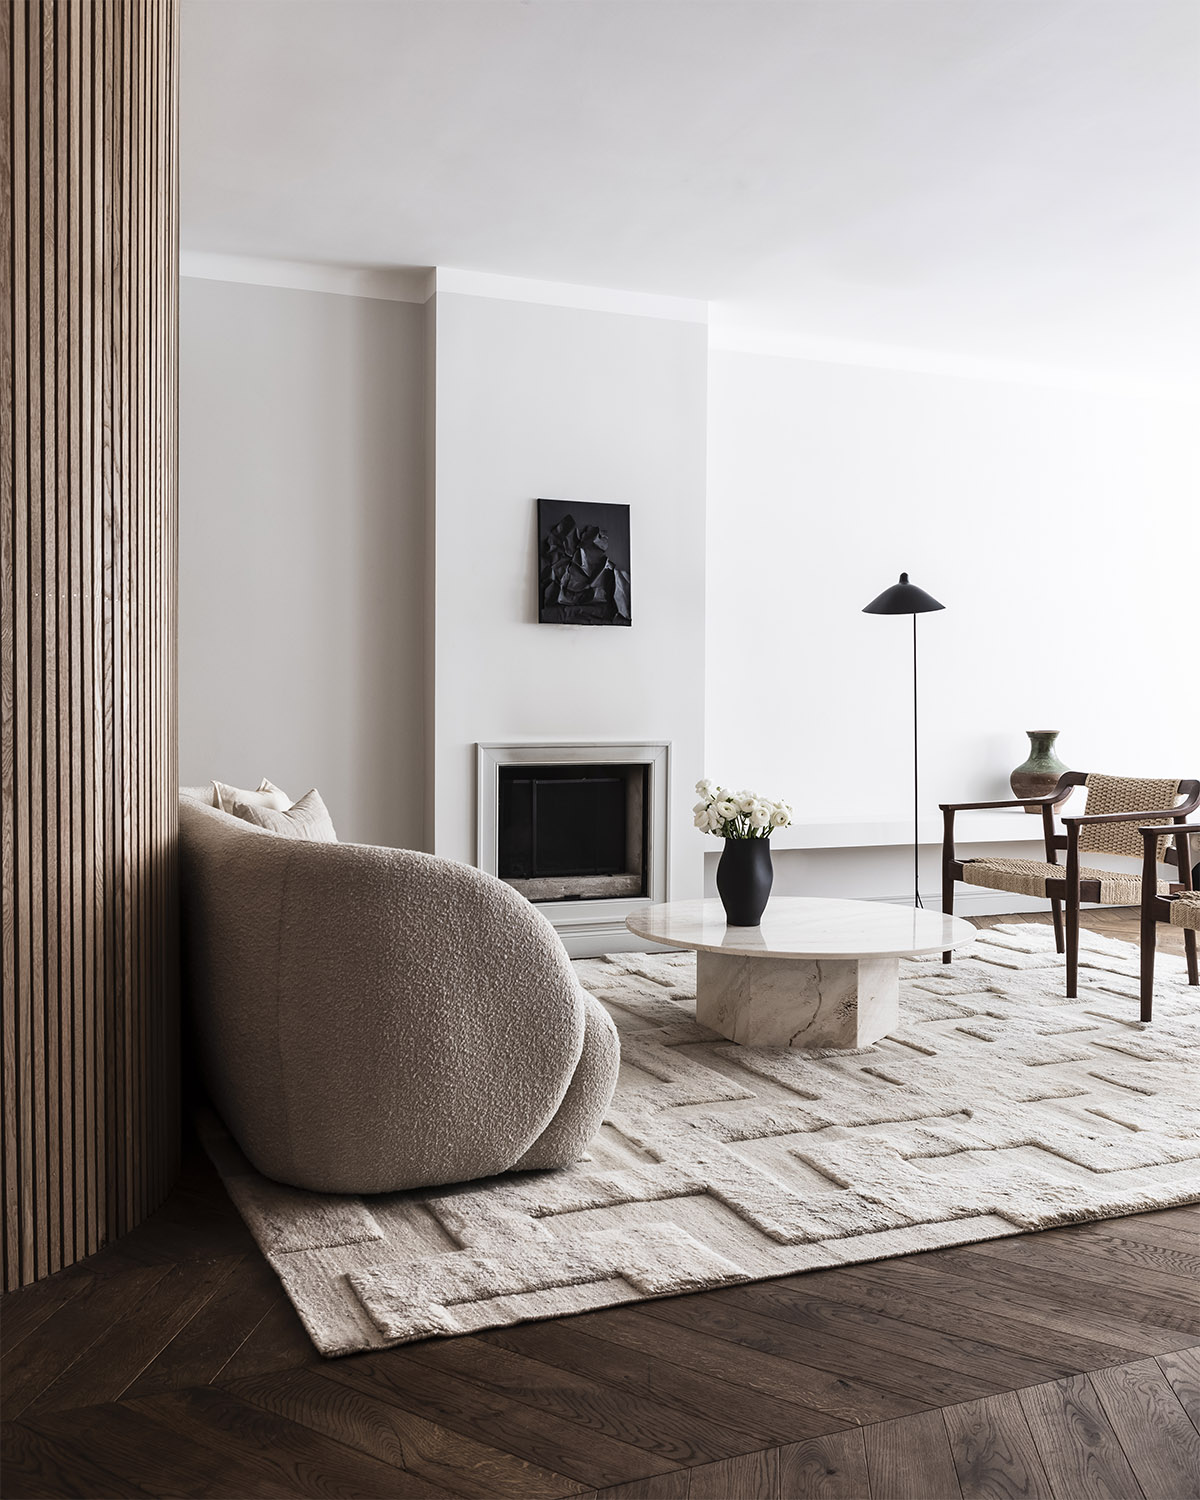 Boho rug in the color Cream Mix shown in a bright living room together with a stone table and a white rounded sofa.